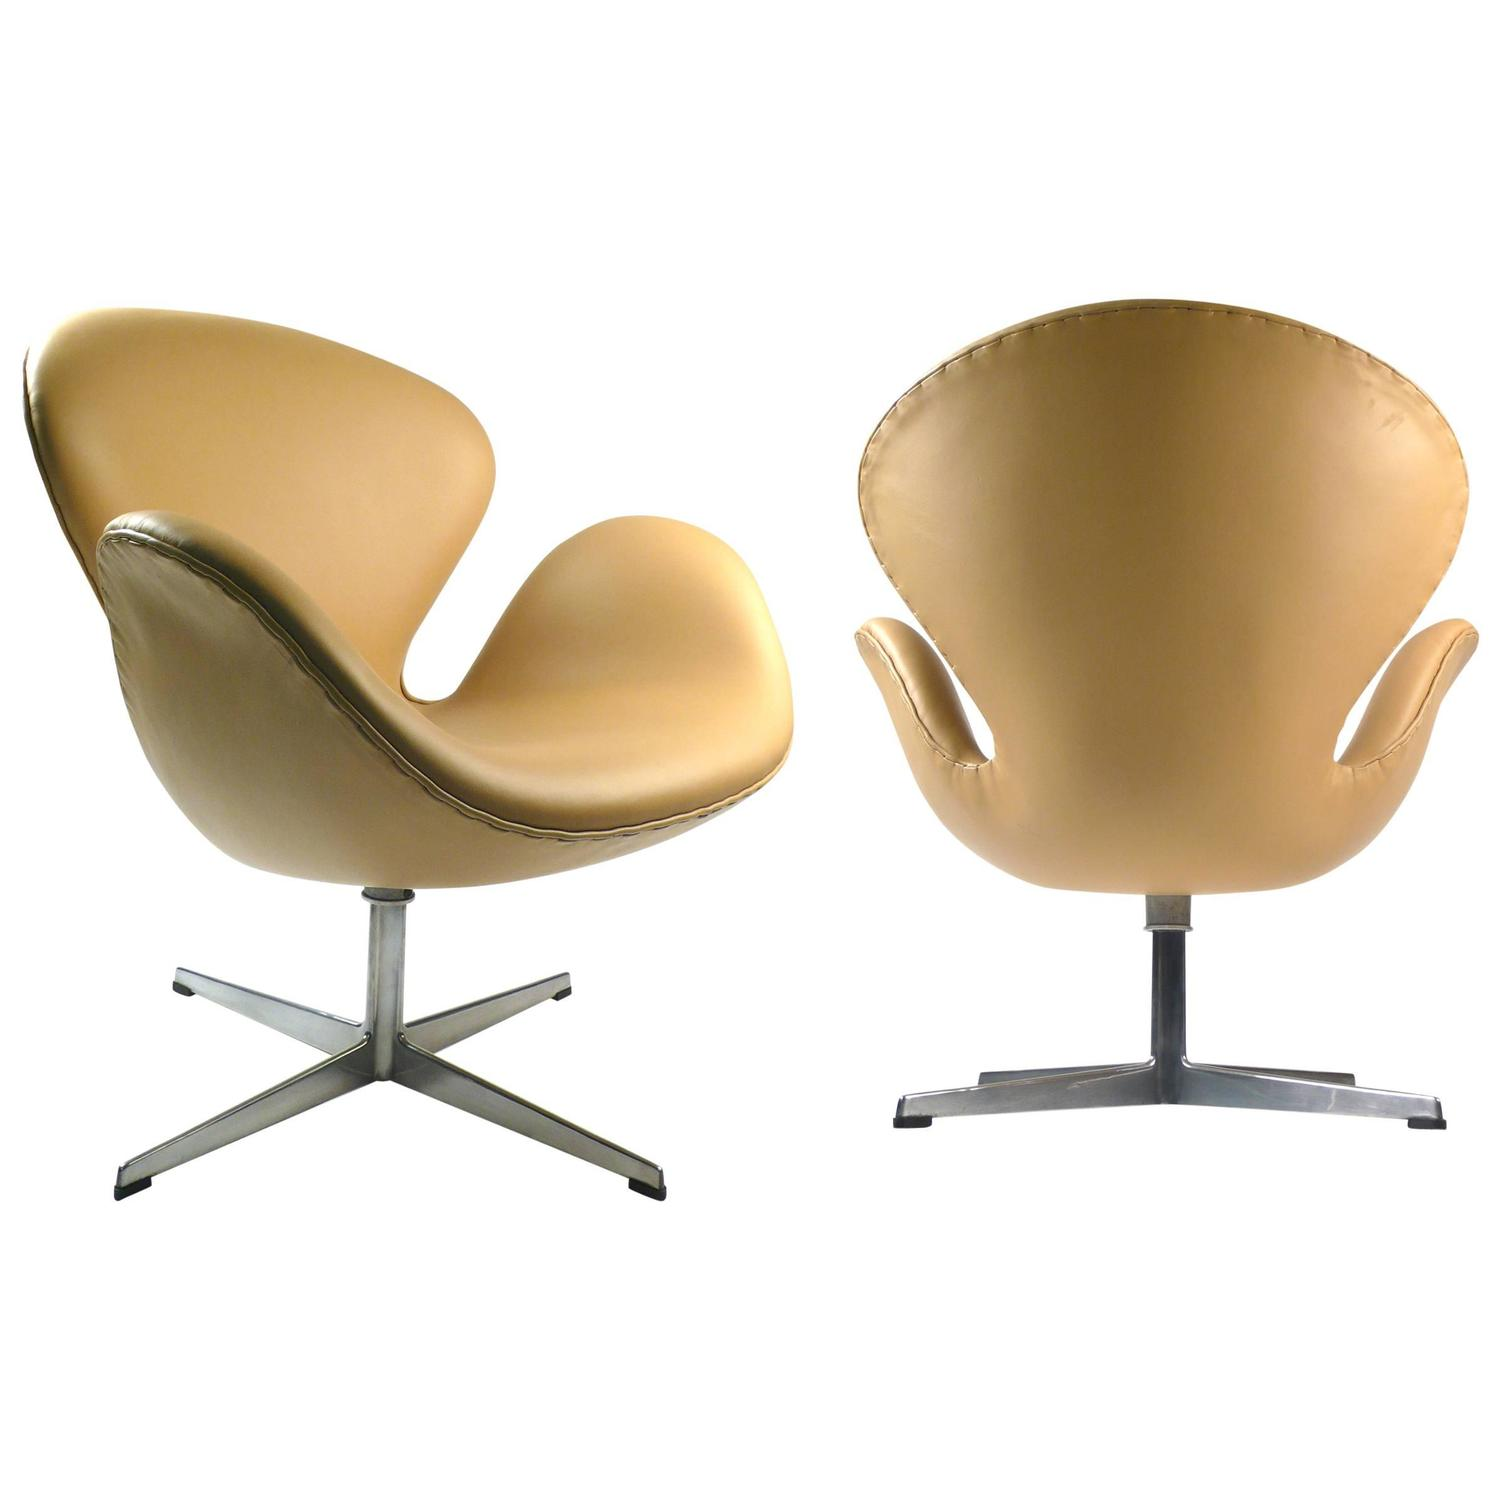 Early fritz hansen production swan chairs for sale at 1stdibs for Swan chairs for sale